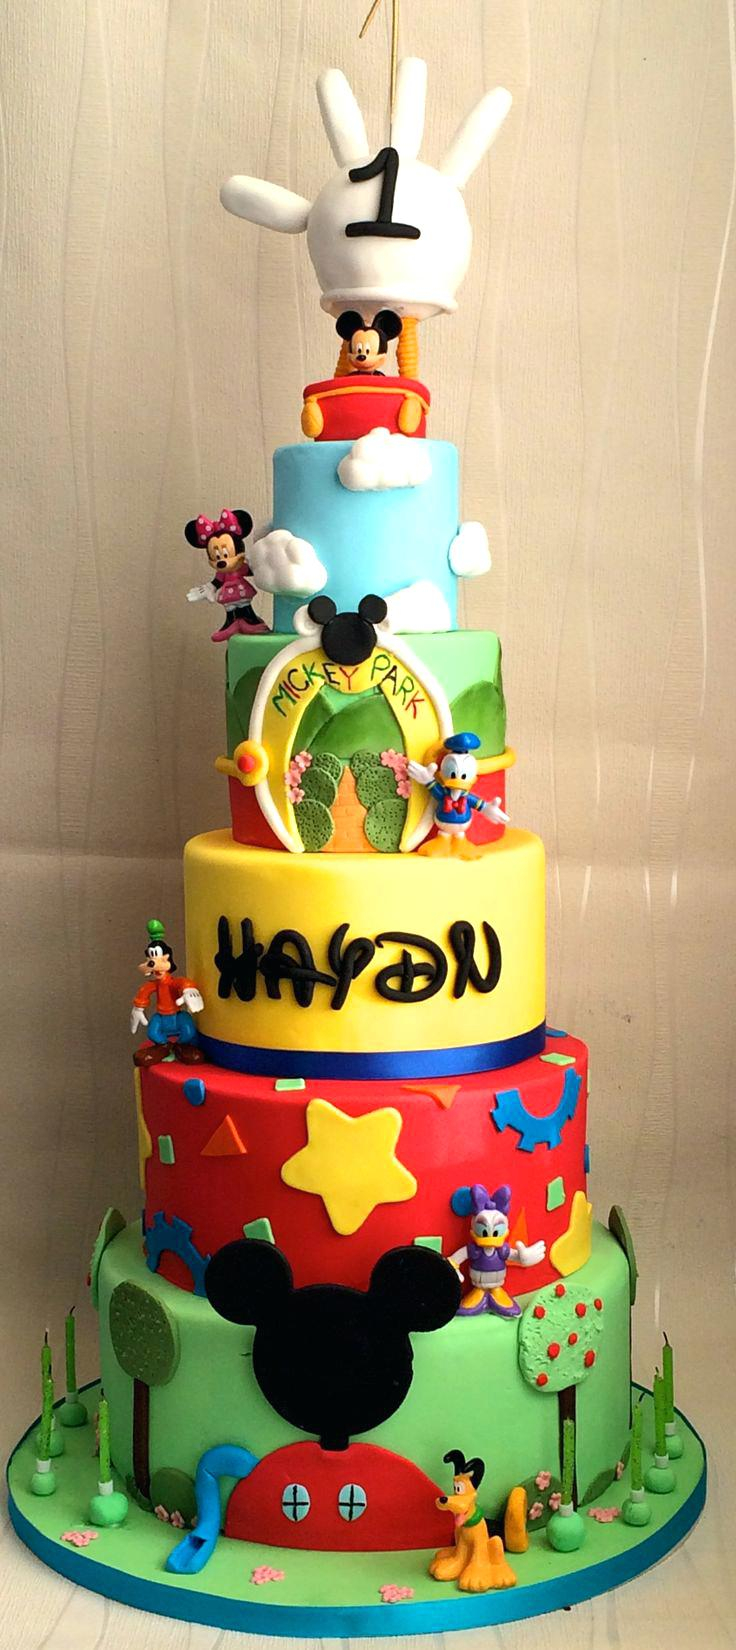 Mickey Mouse First Birthday Cake Ideas S Wondercraftnetworks Published January 6 2019 At 736 X 1650